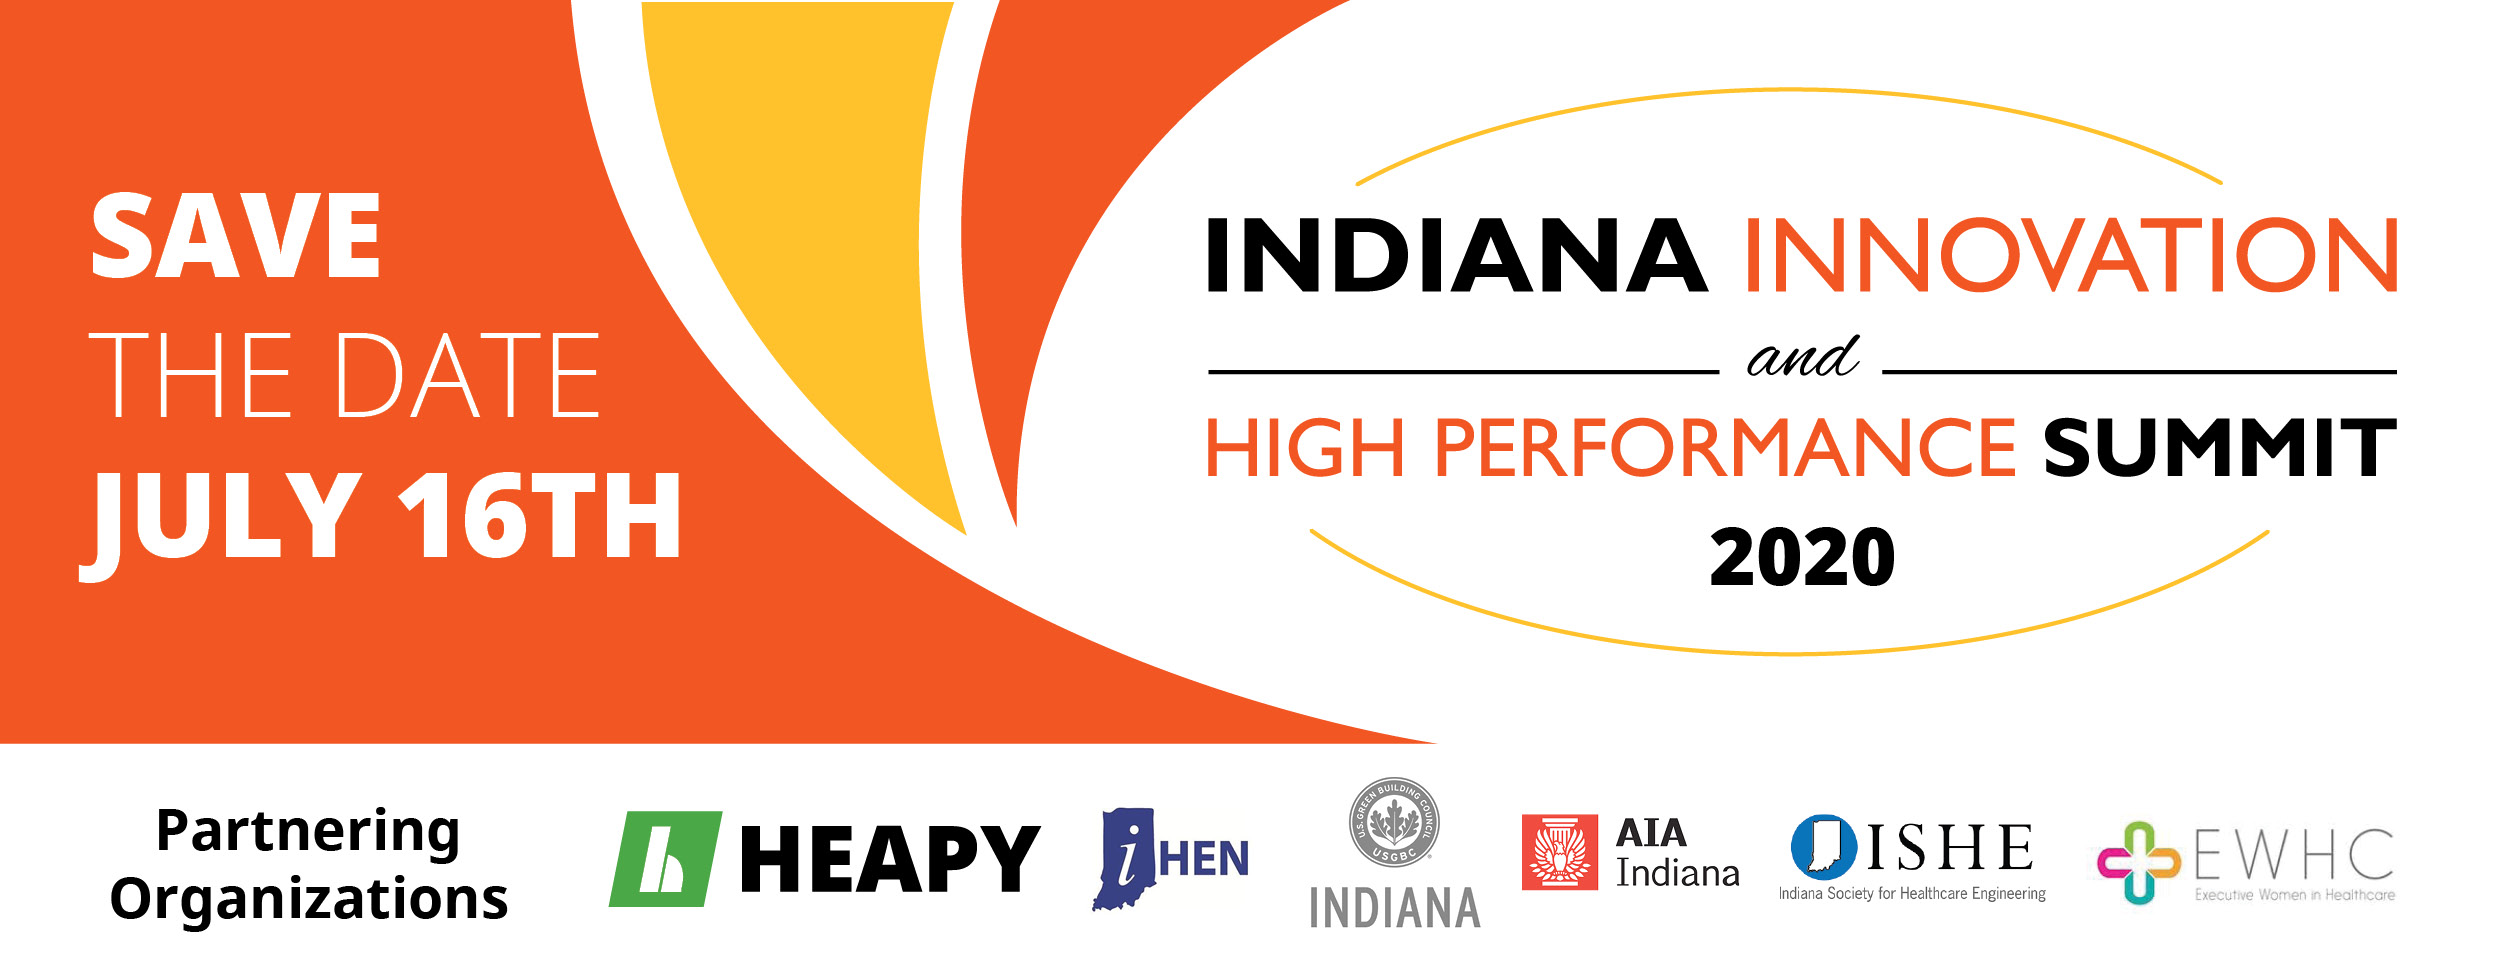 HEAPY Indiana Innovation and High Performance Summit